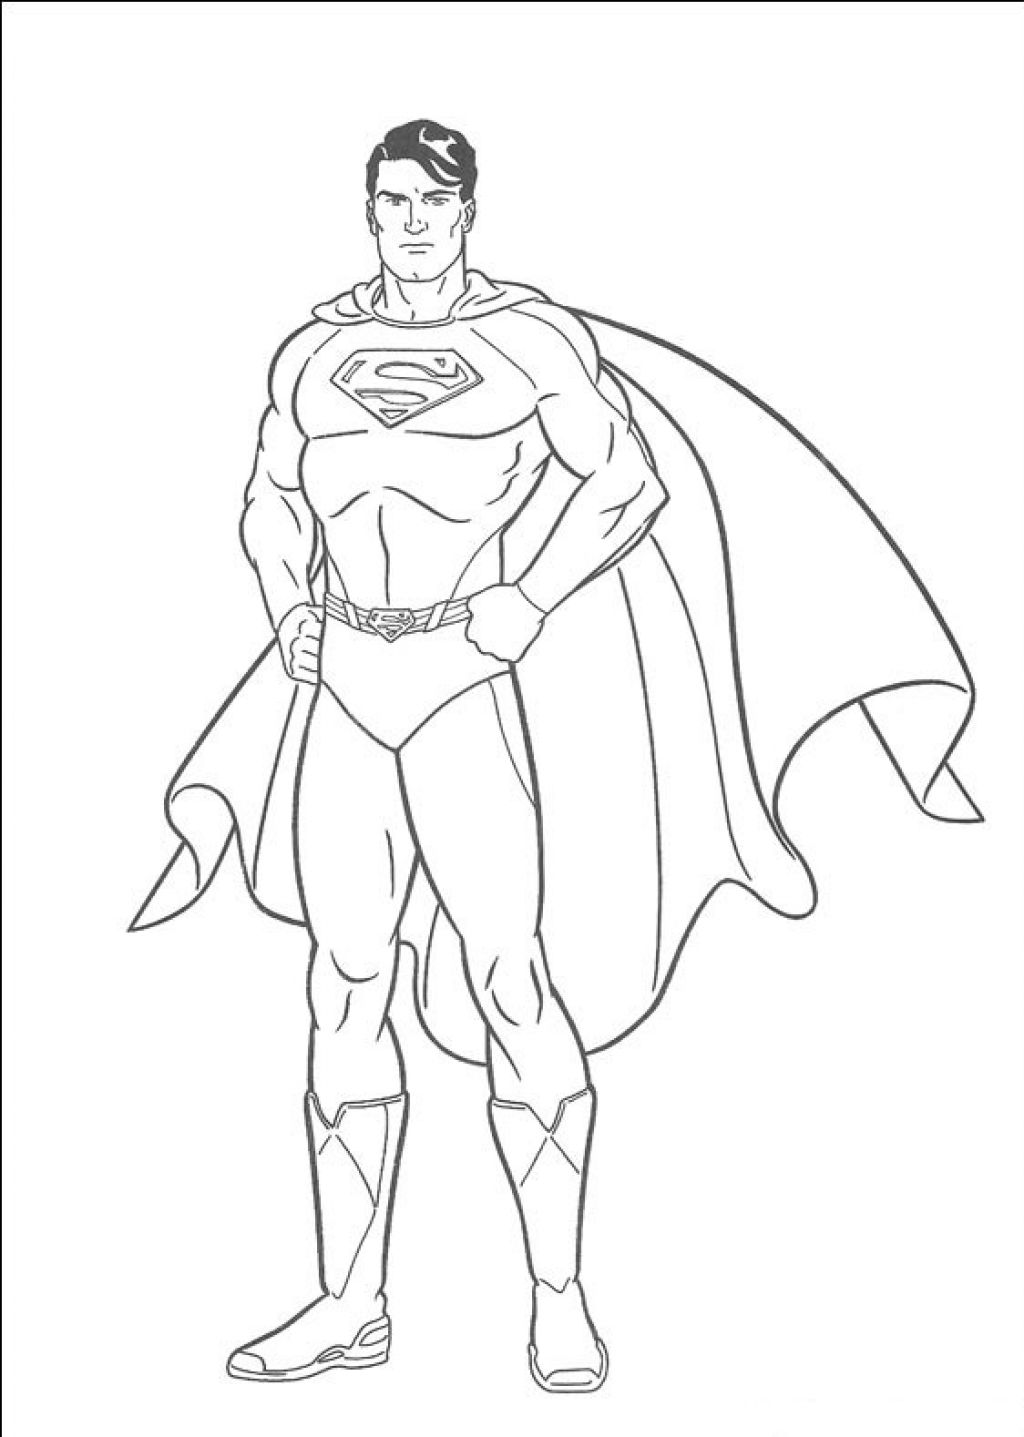 superman coloring images picture of superman cartoon coloring home images superman coloring